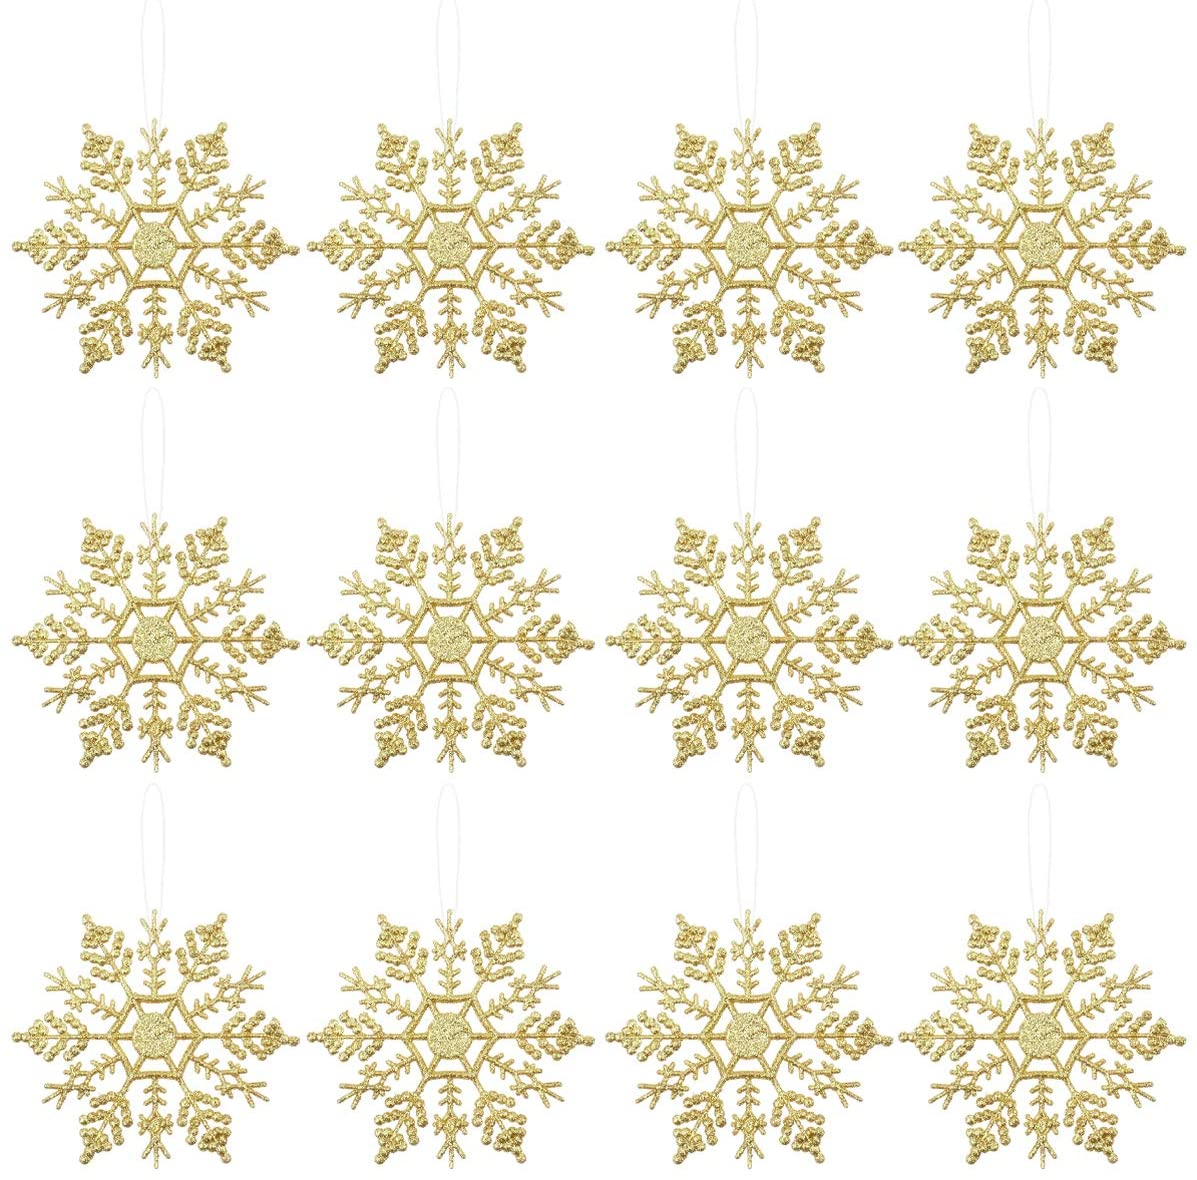 Amosfun 12pcs Christmas Glitter Snowflake Plastic Snowflake Hanging Ornaments Decorations Christmas Tree Decorations for Christmas Party and Home Decor